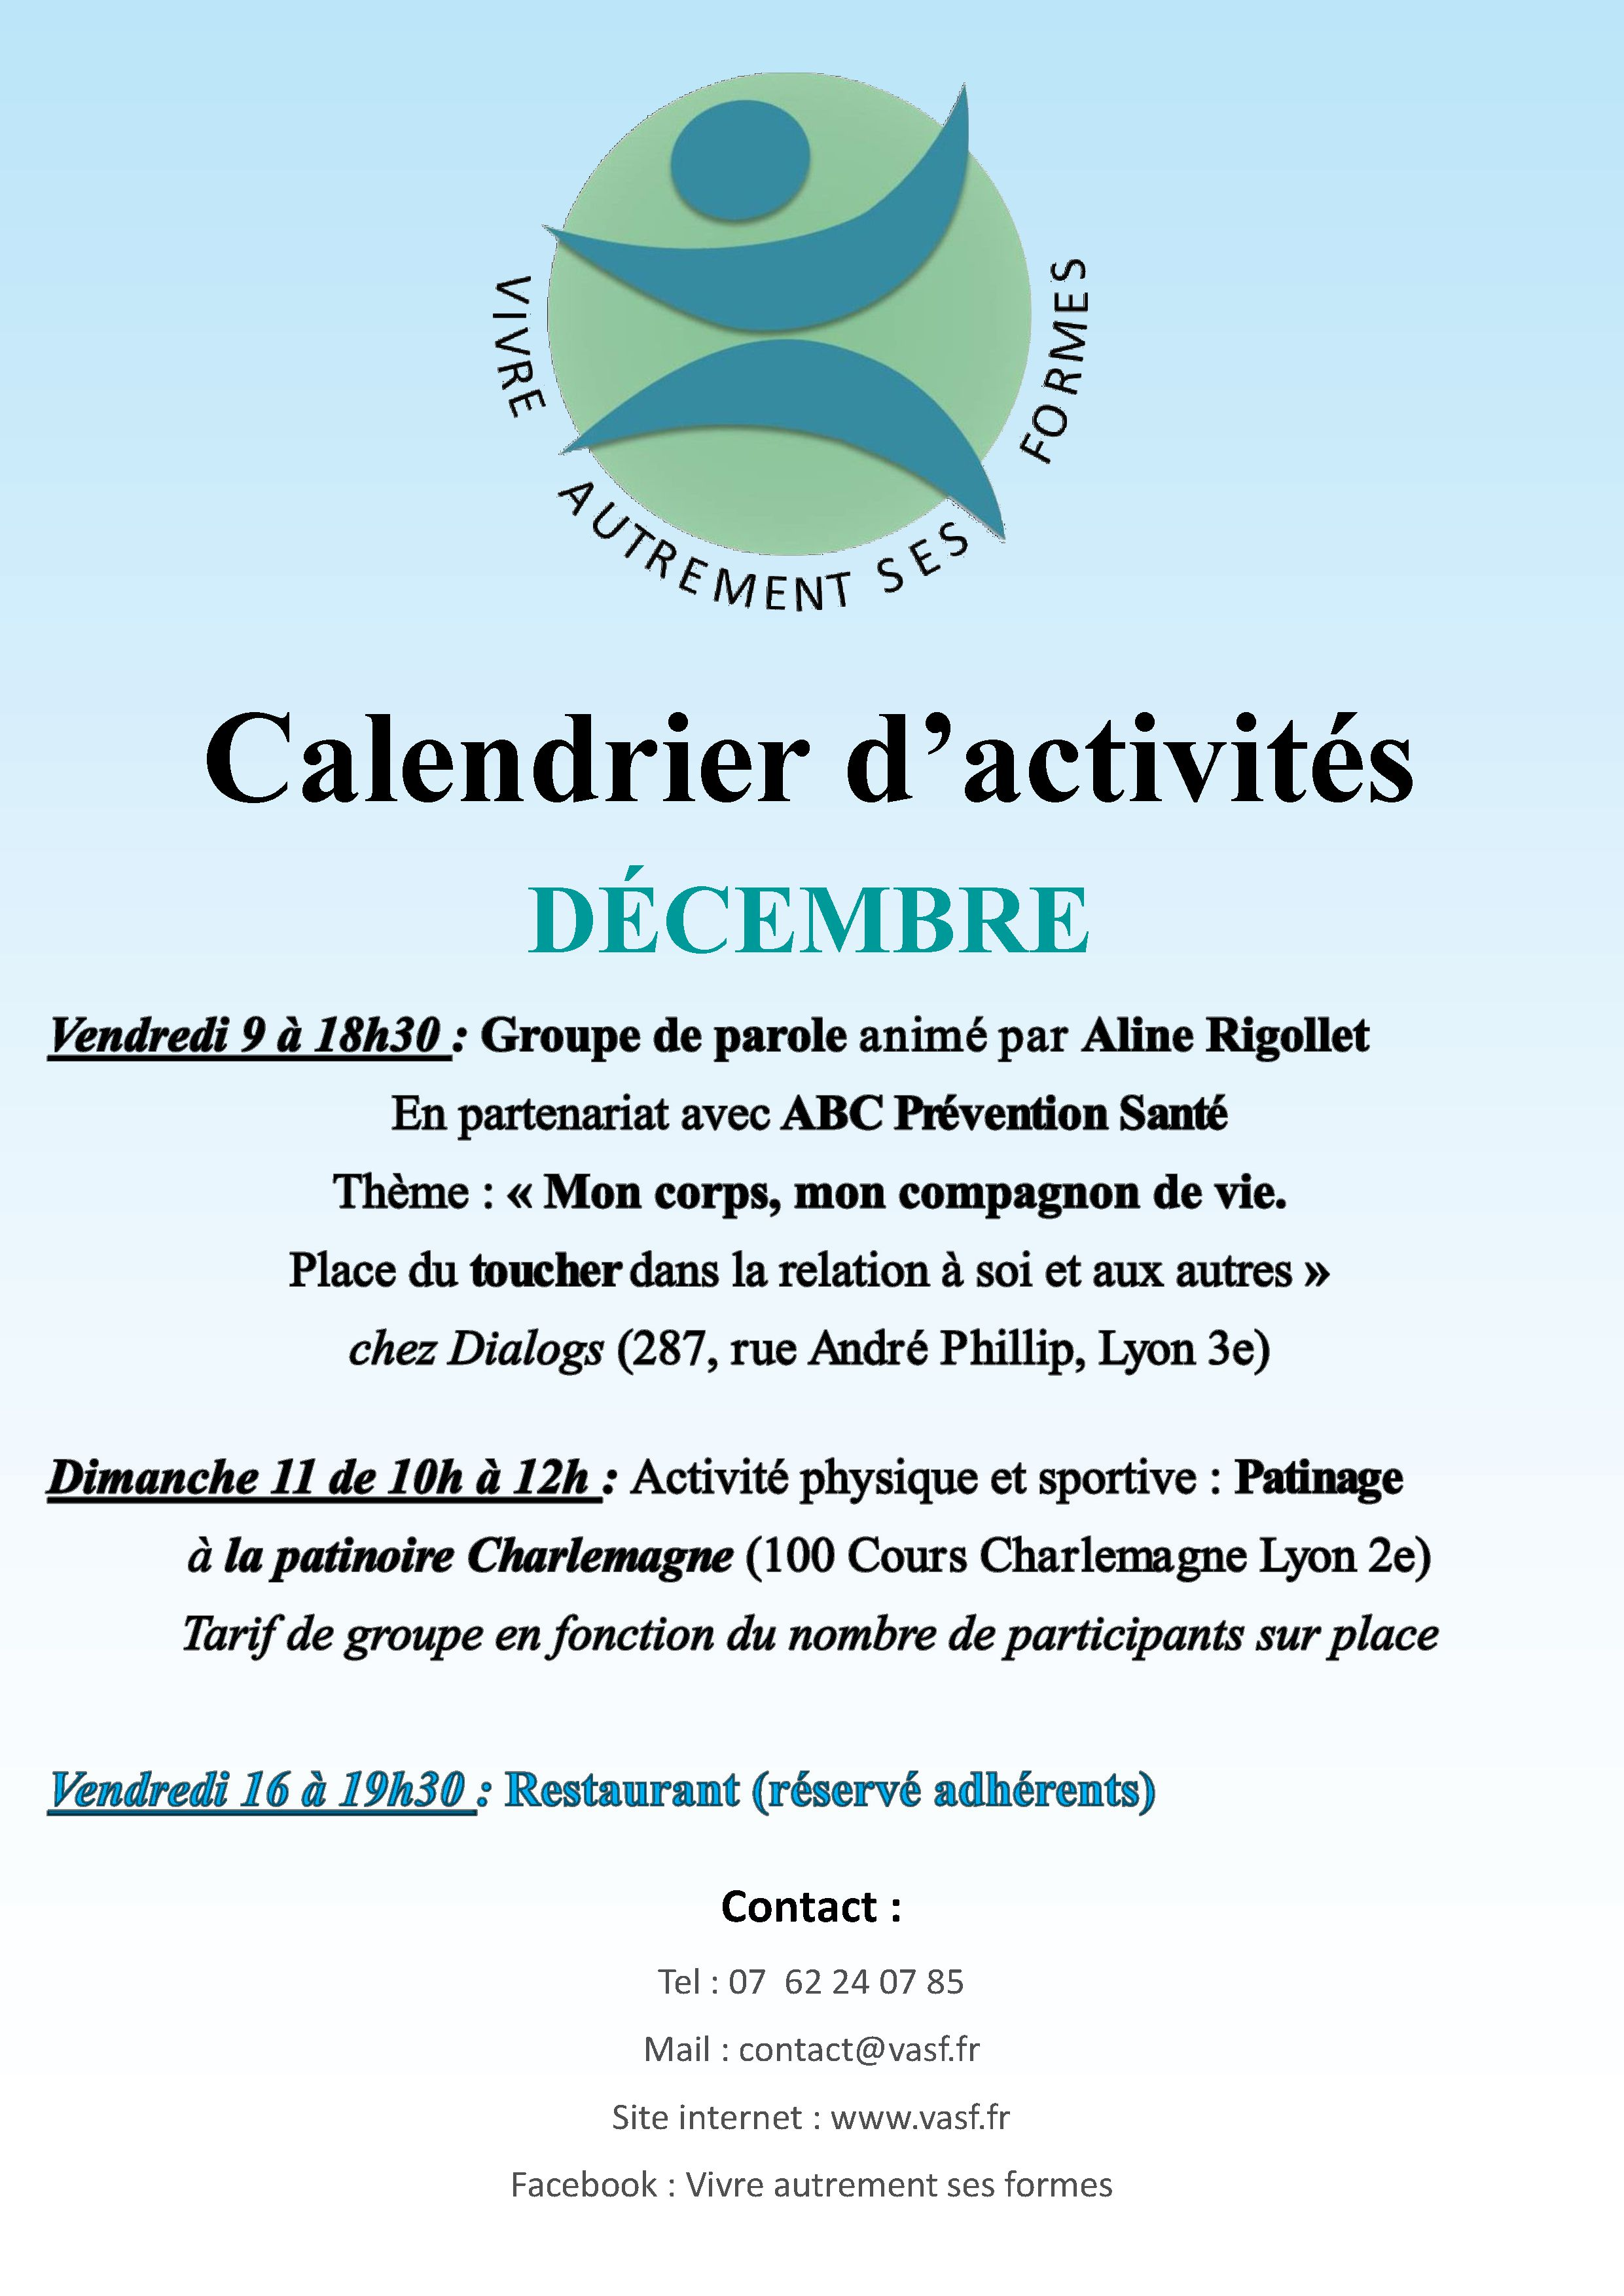 flyer_vasf_calendrier-dec